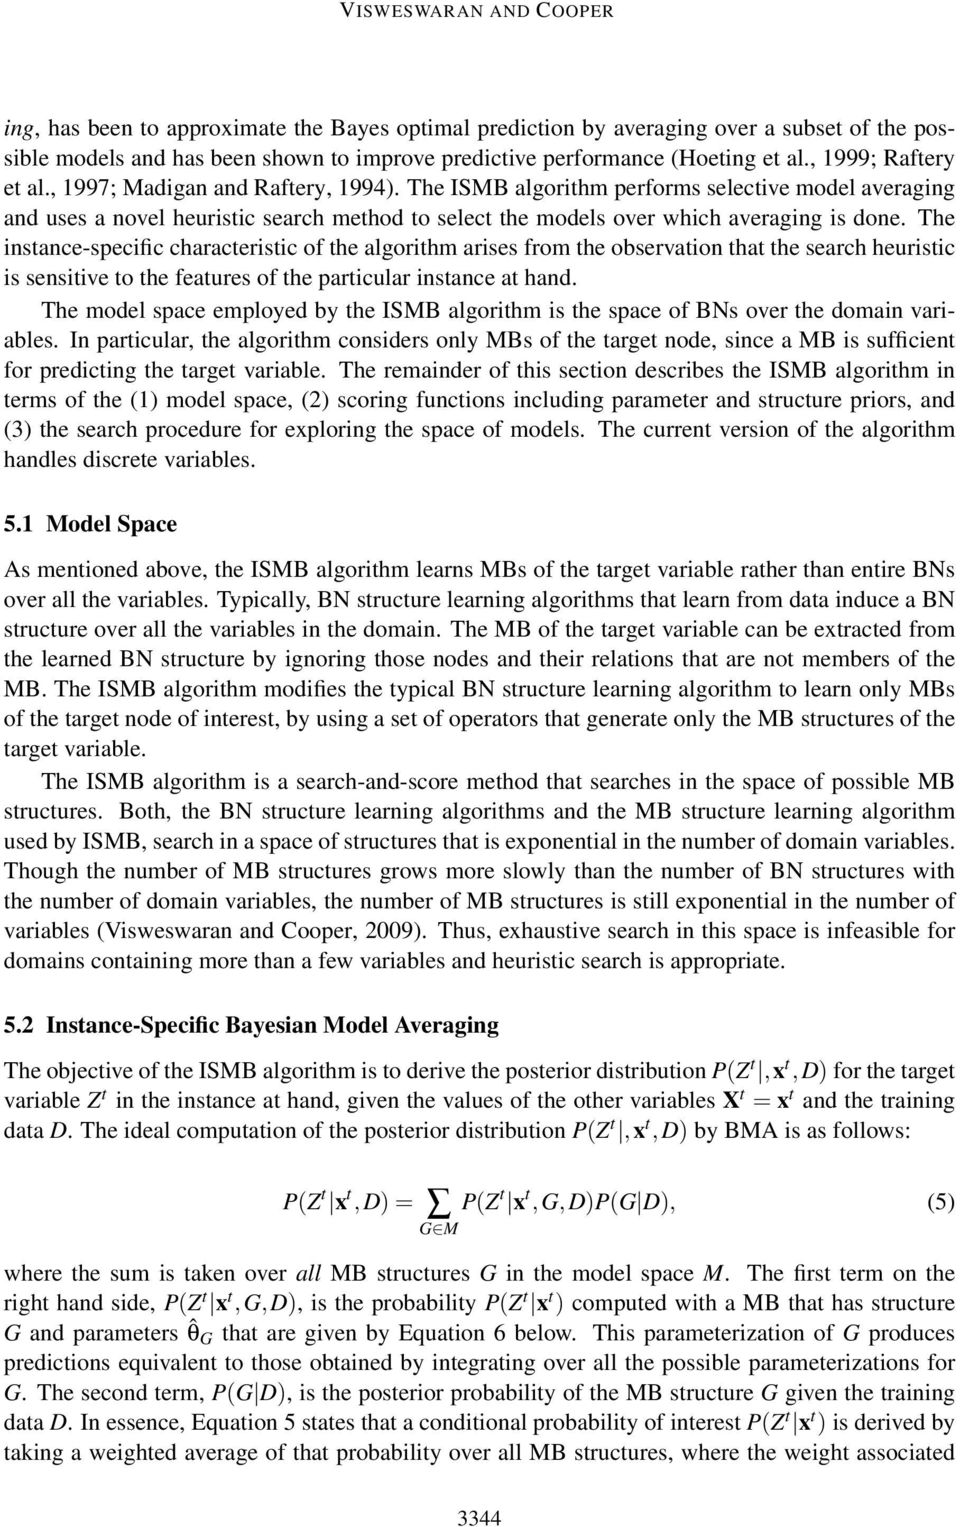 The ISMB algorithm performs selective model averaging and uses a novel heuristic search method to select the models over which averaging is done.